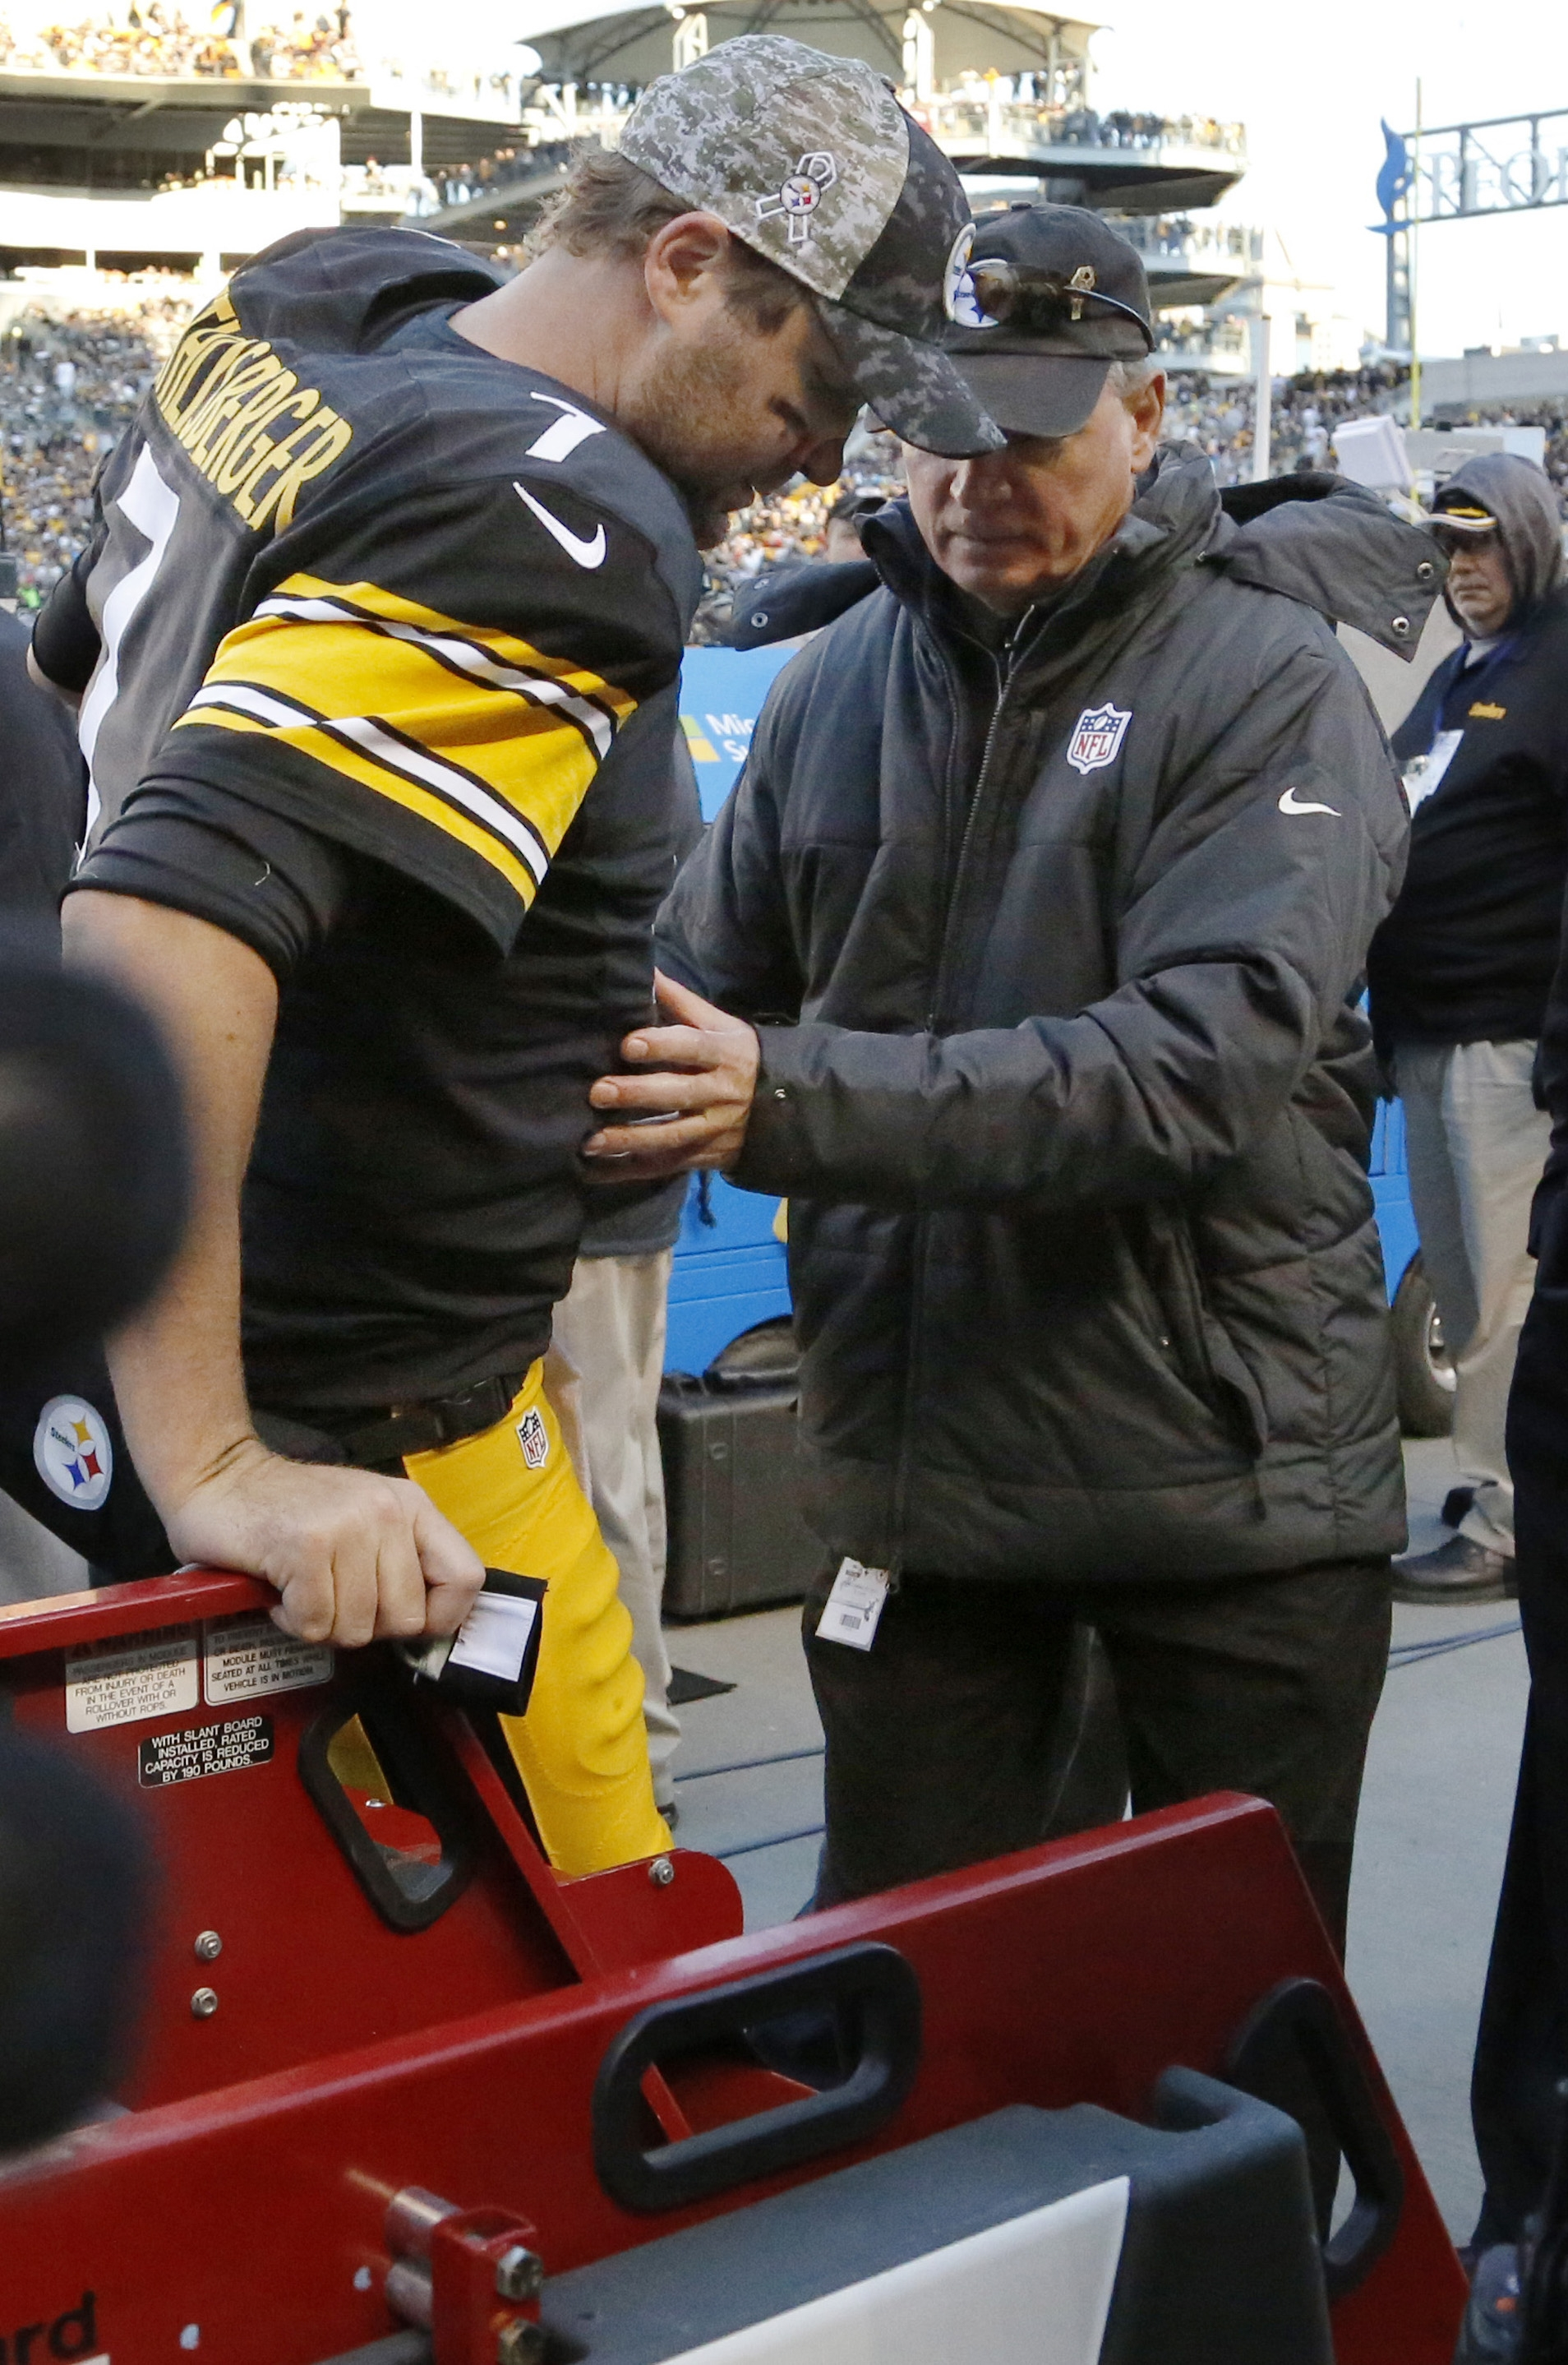 Pittsburgh Steelers quarterback Ben Roethlisberger (7) is helped to a cart after he was injured in the second half of an NFL football game against the Oakland Raiders, Sunday, Nov. 8, 2015, in Pittsburgh. The Steelers won 38-35. (AP Photo/Gene Puskar)